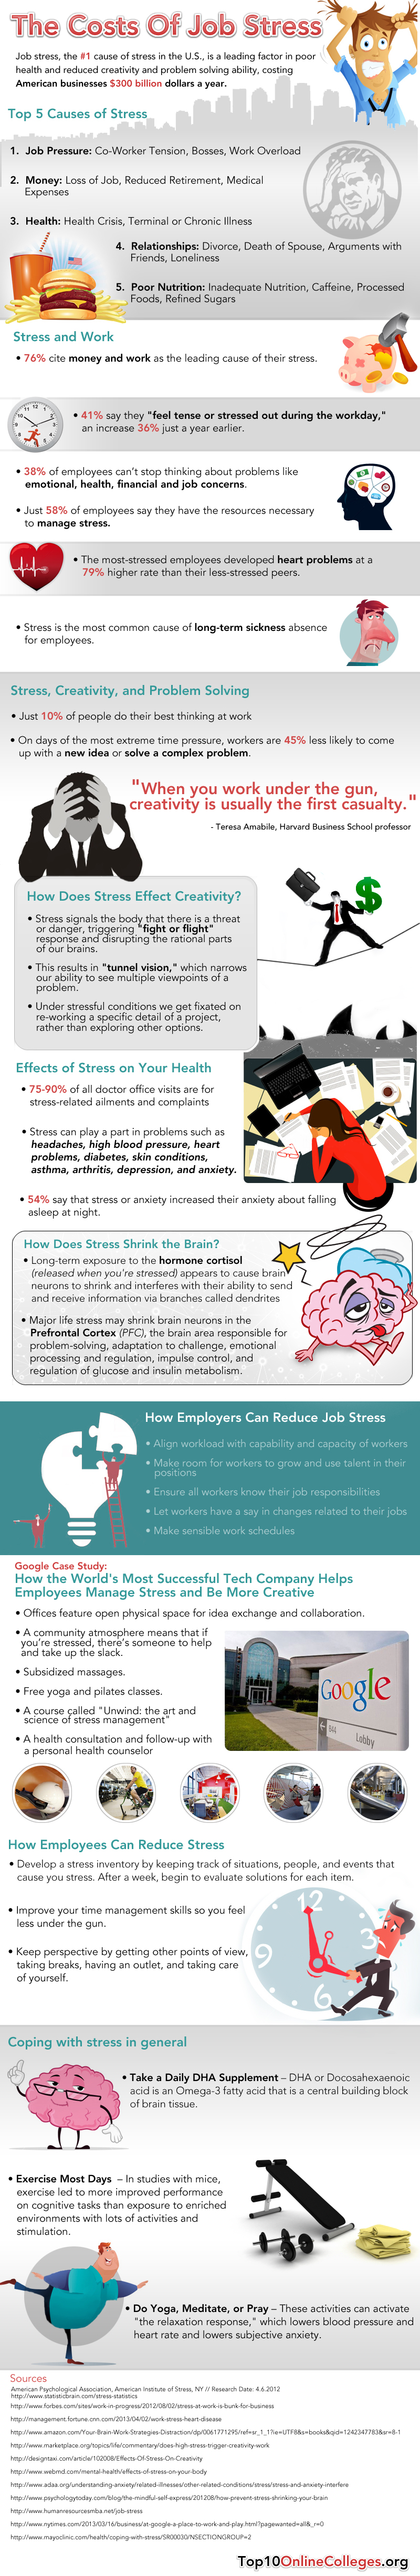 Costs-of-Job-Stress